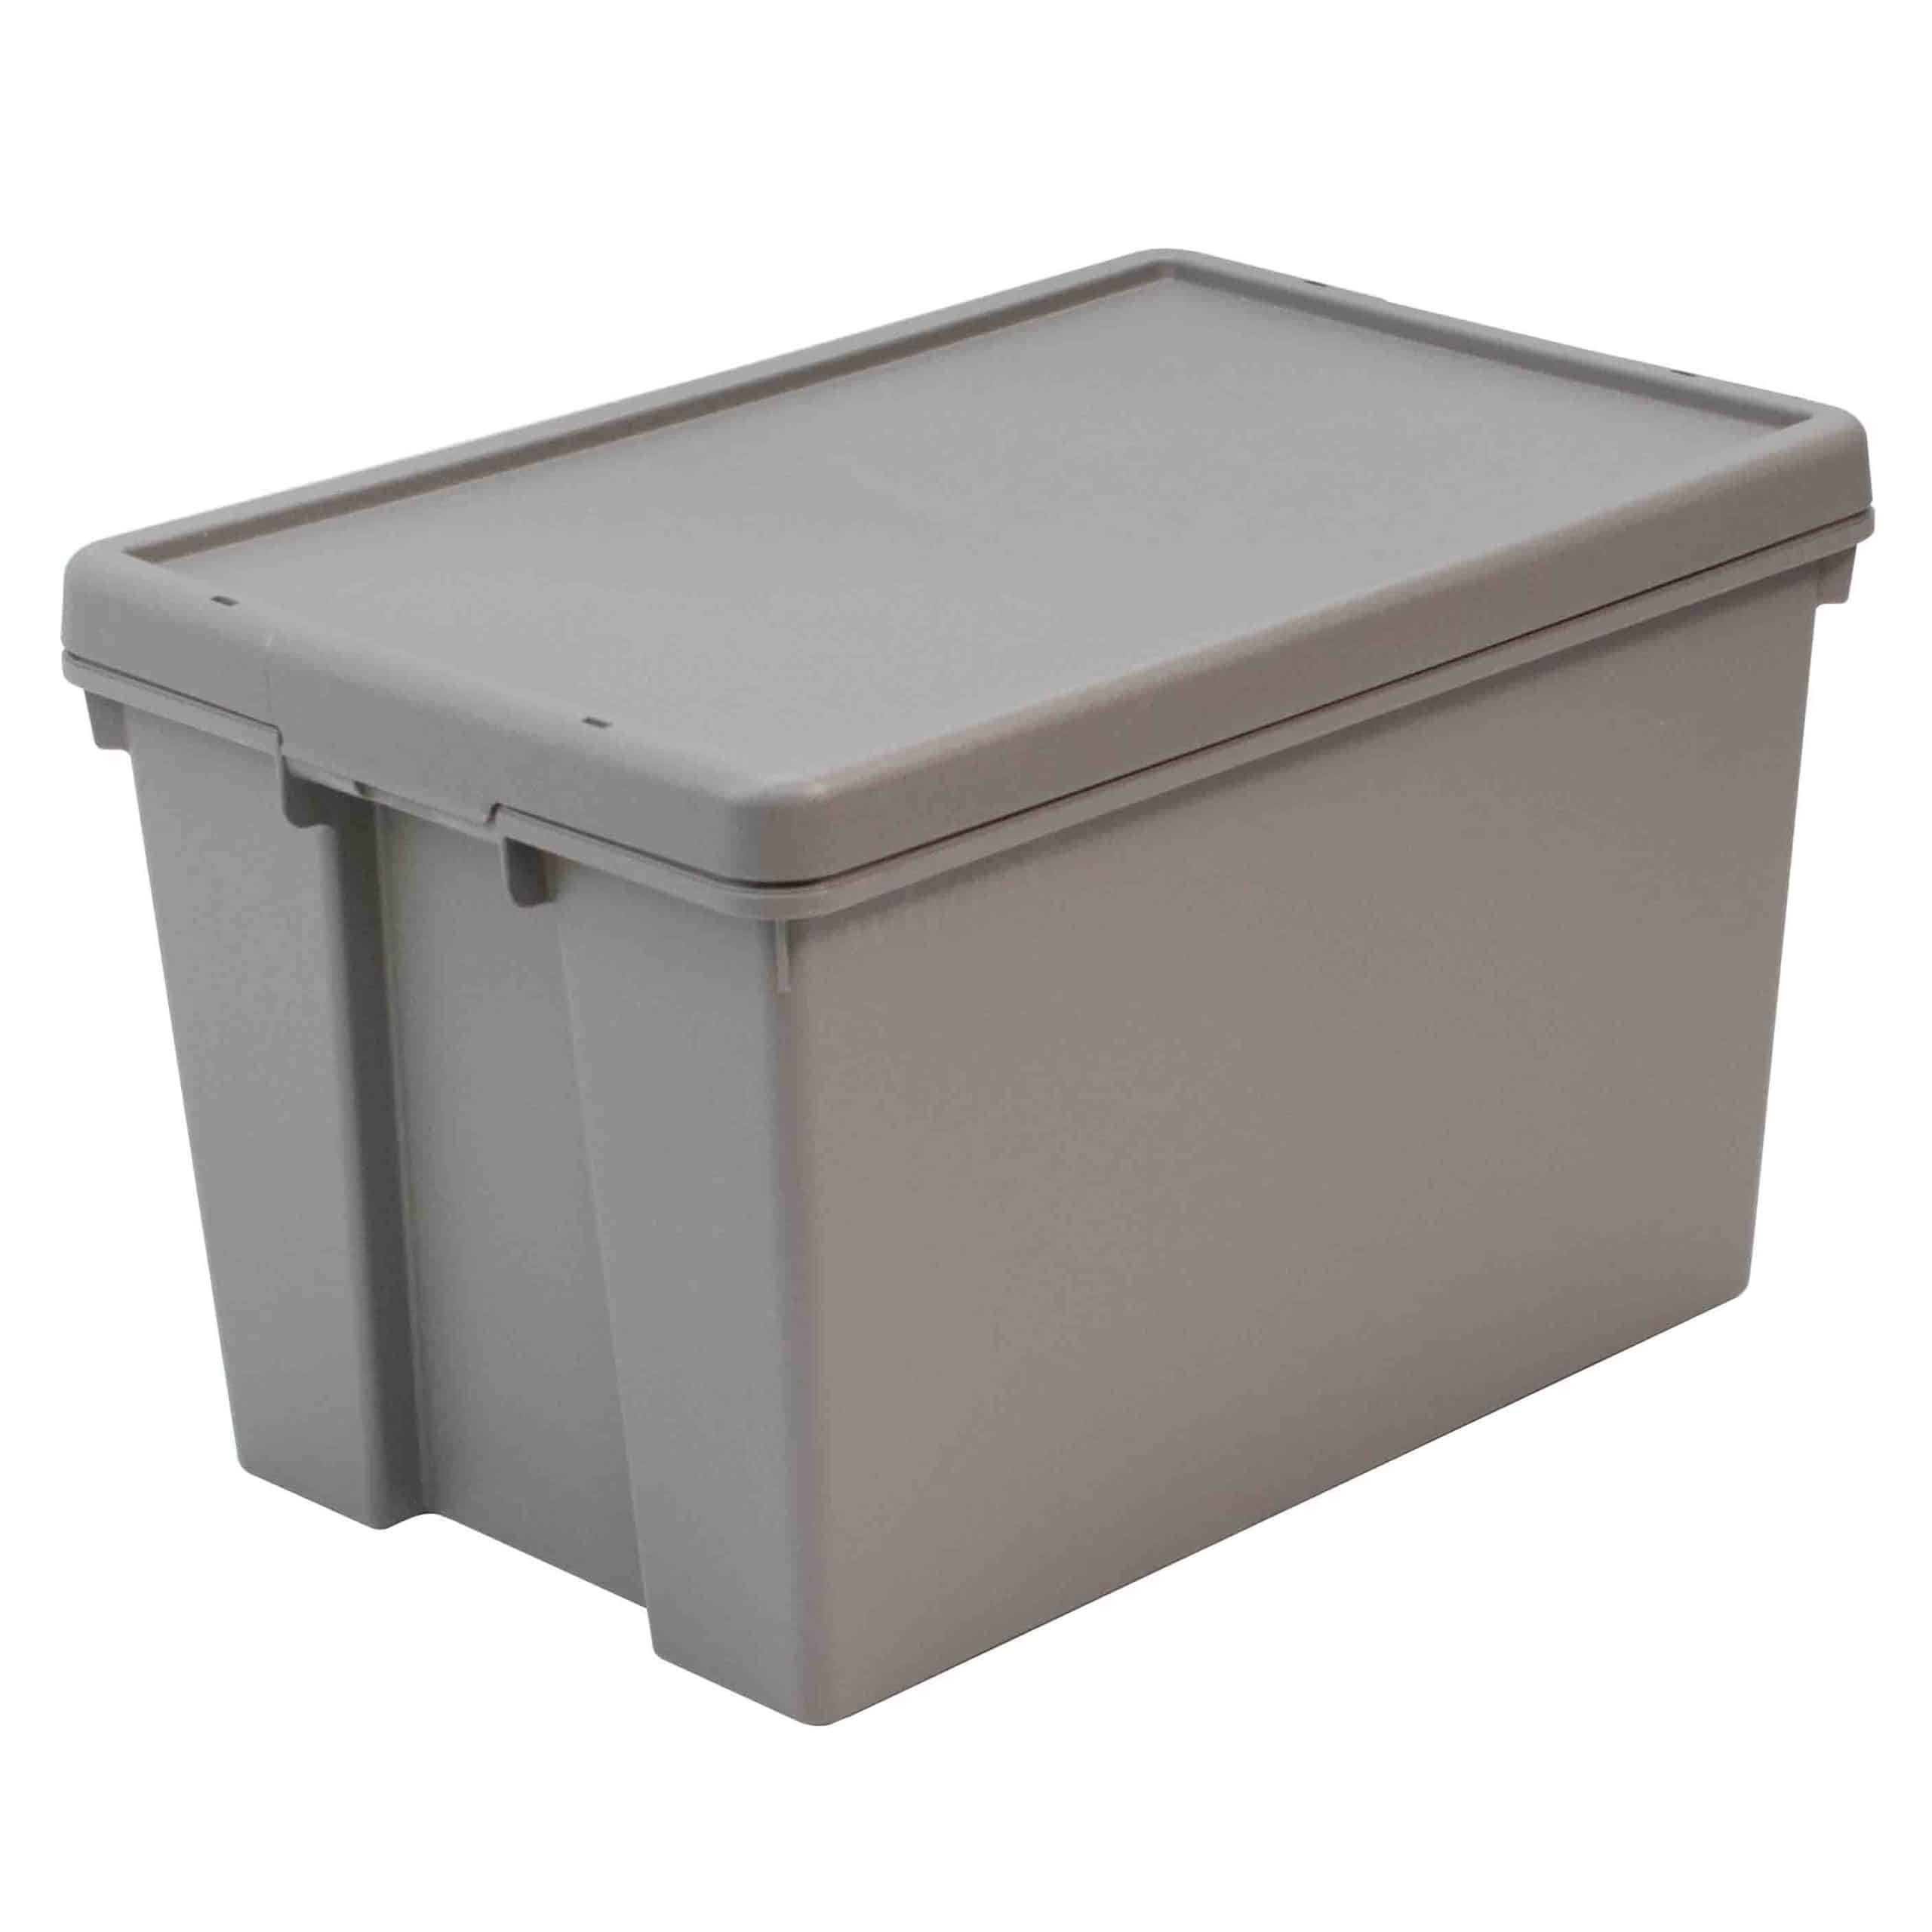 62 Litre Upcycled Plastic Storage Box